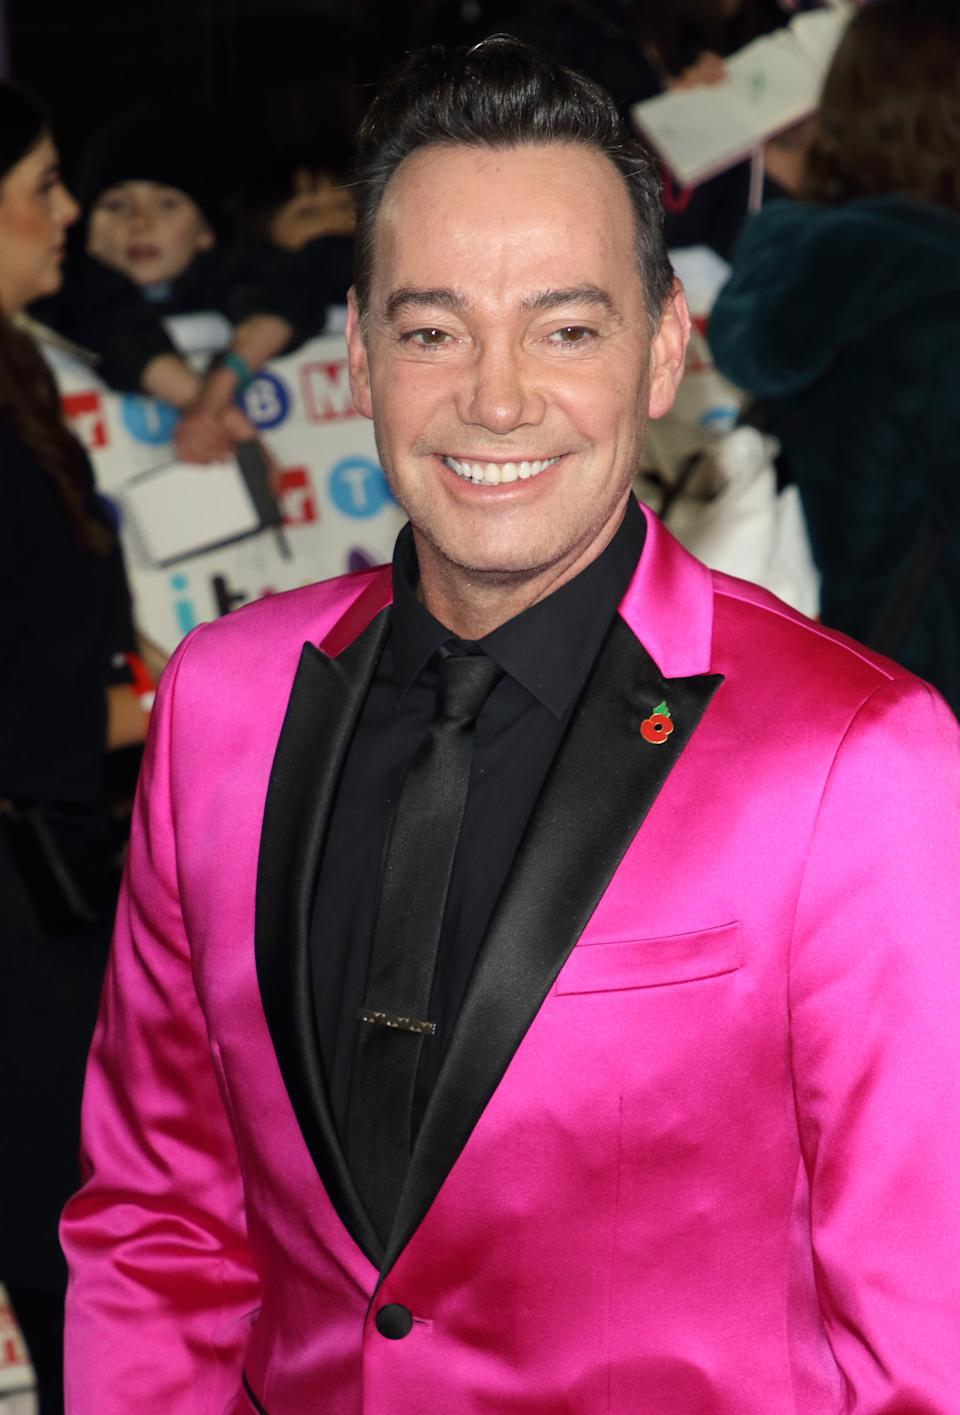 Craig Revel Horwood on the red carpet at The Daily Mirror Pride of Britain Awards, in partnership with TSB, at the Grosvenor House Hotel, Park Lane. (Photo by Keith Mayhew / SOPA Images/Sipa USA)